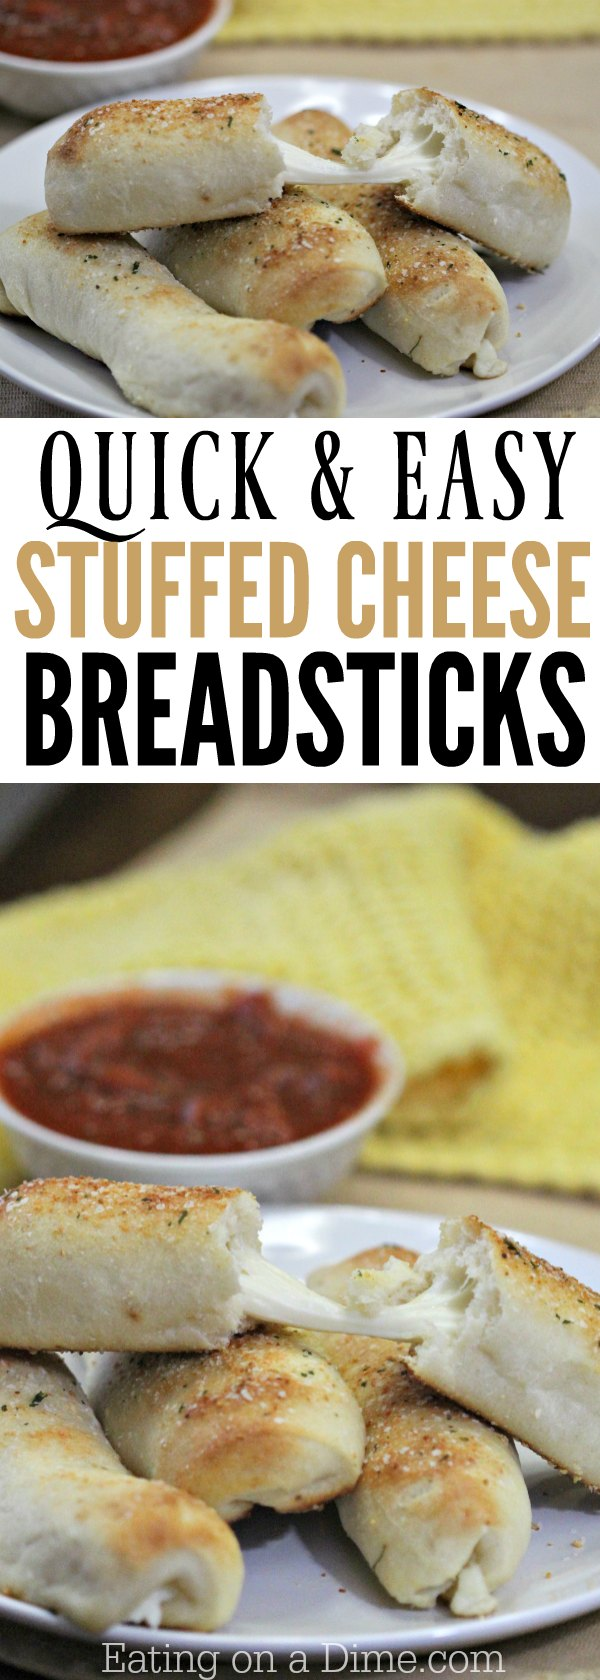 Garlic Bread Cheese Sticks Recipe Eating On A Dime